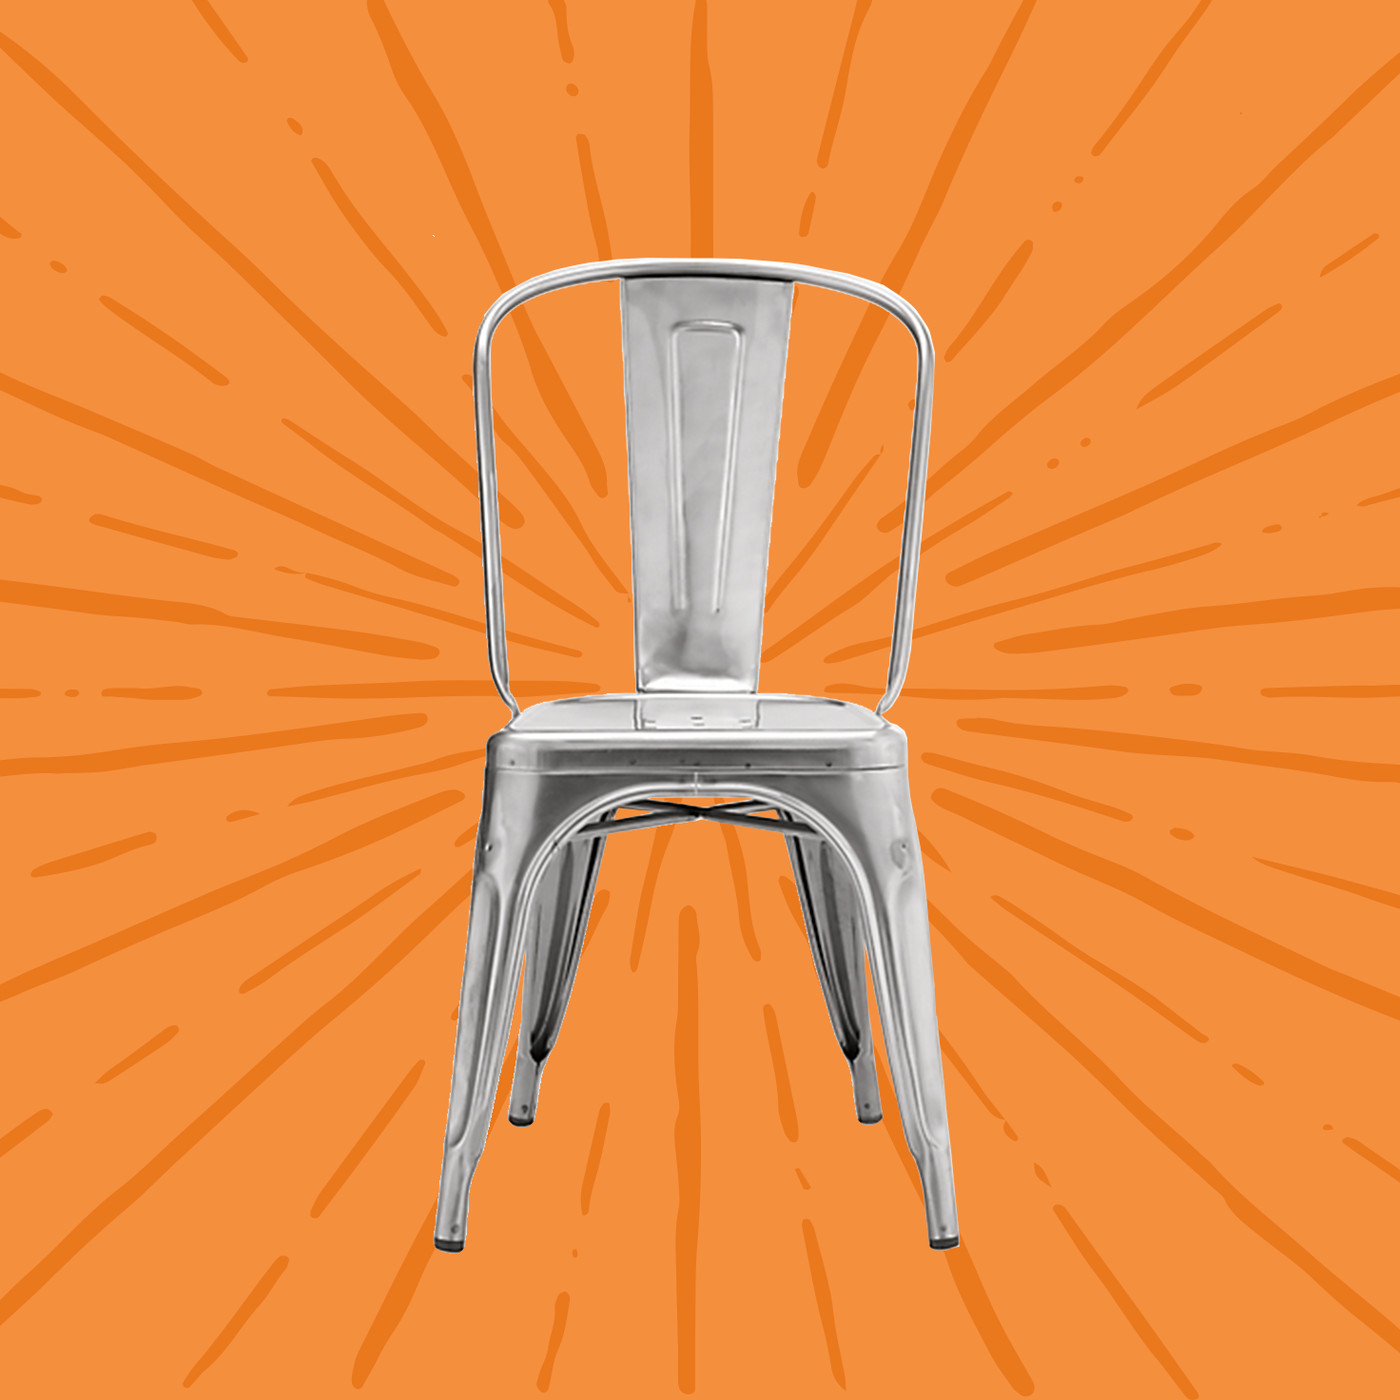 Fabulous This Metal Chair Is In Every Cafe Bistro And Restaurant Vox Download Free Architecture Designs Scobabritishbridgeorg